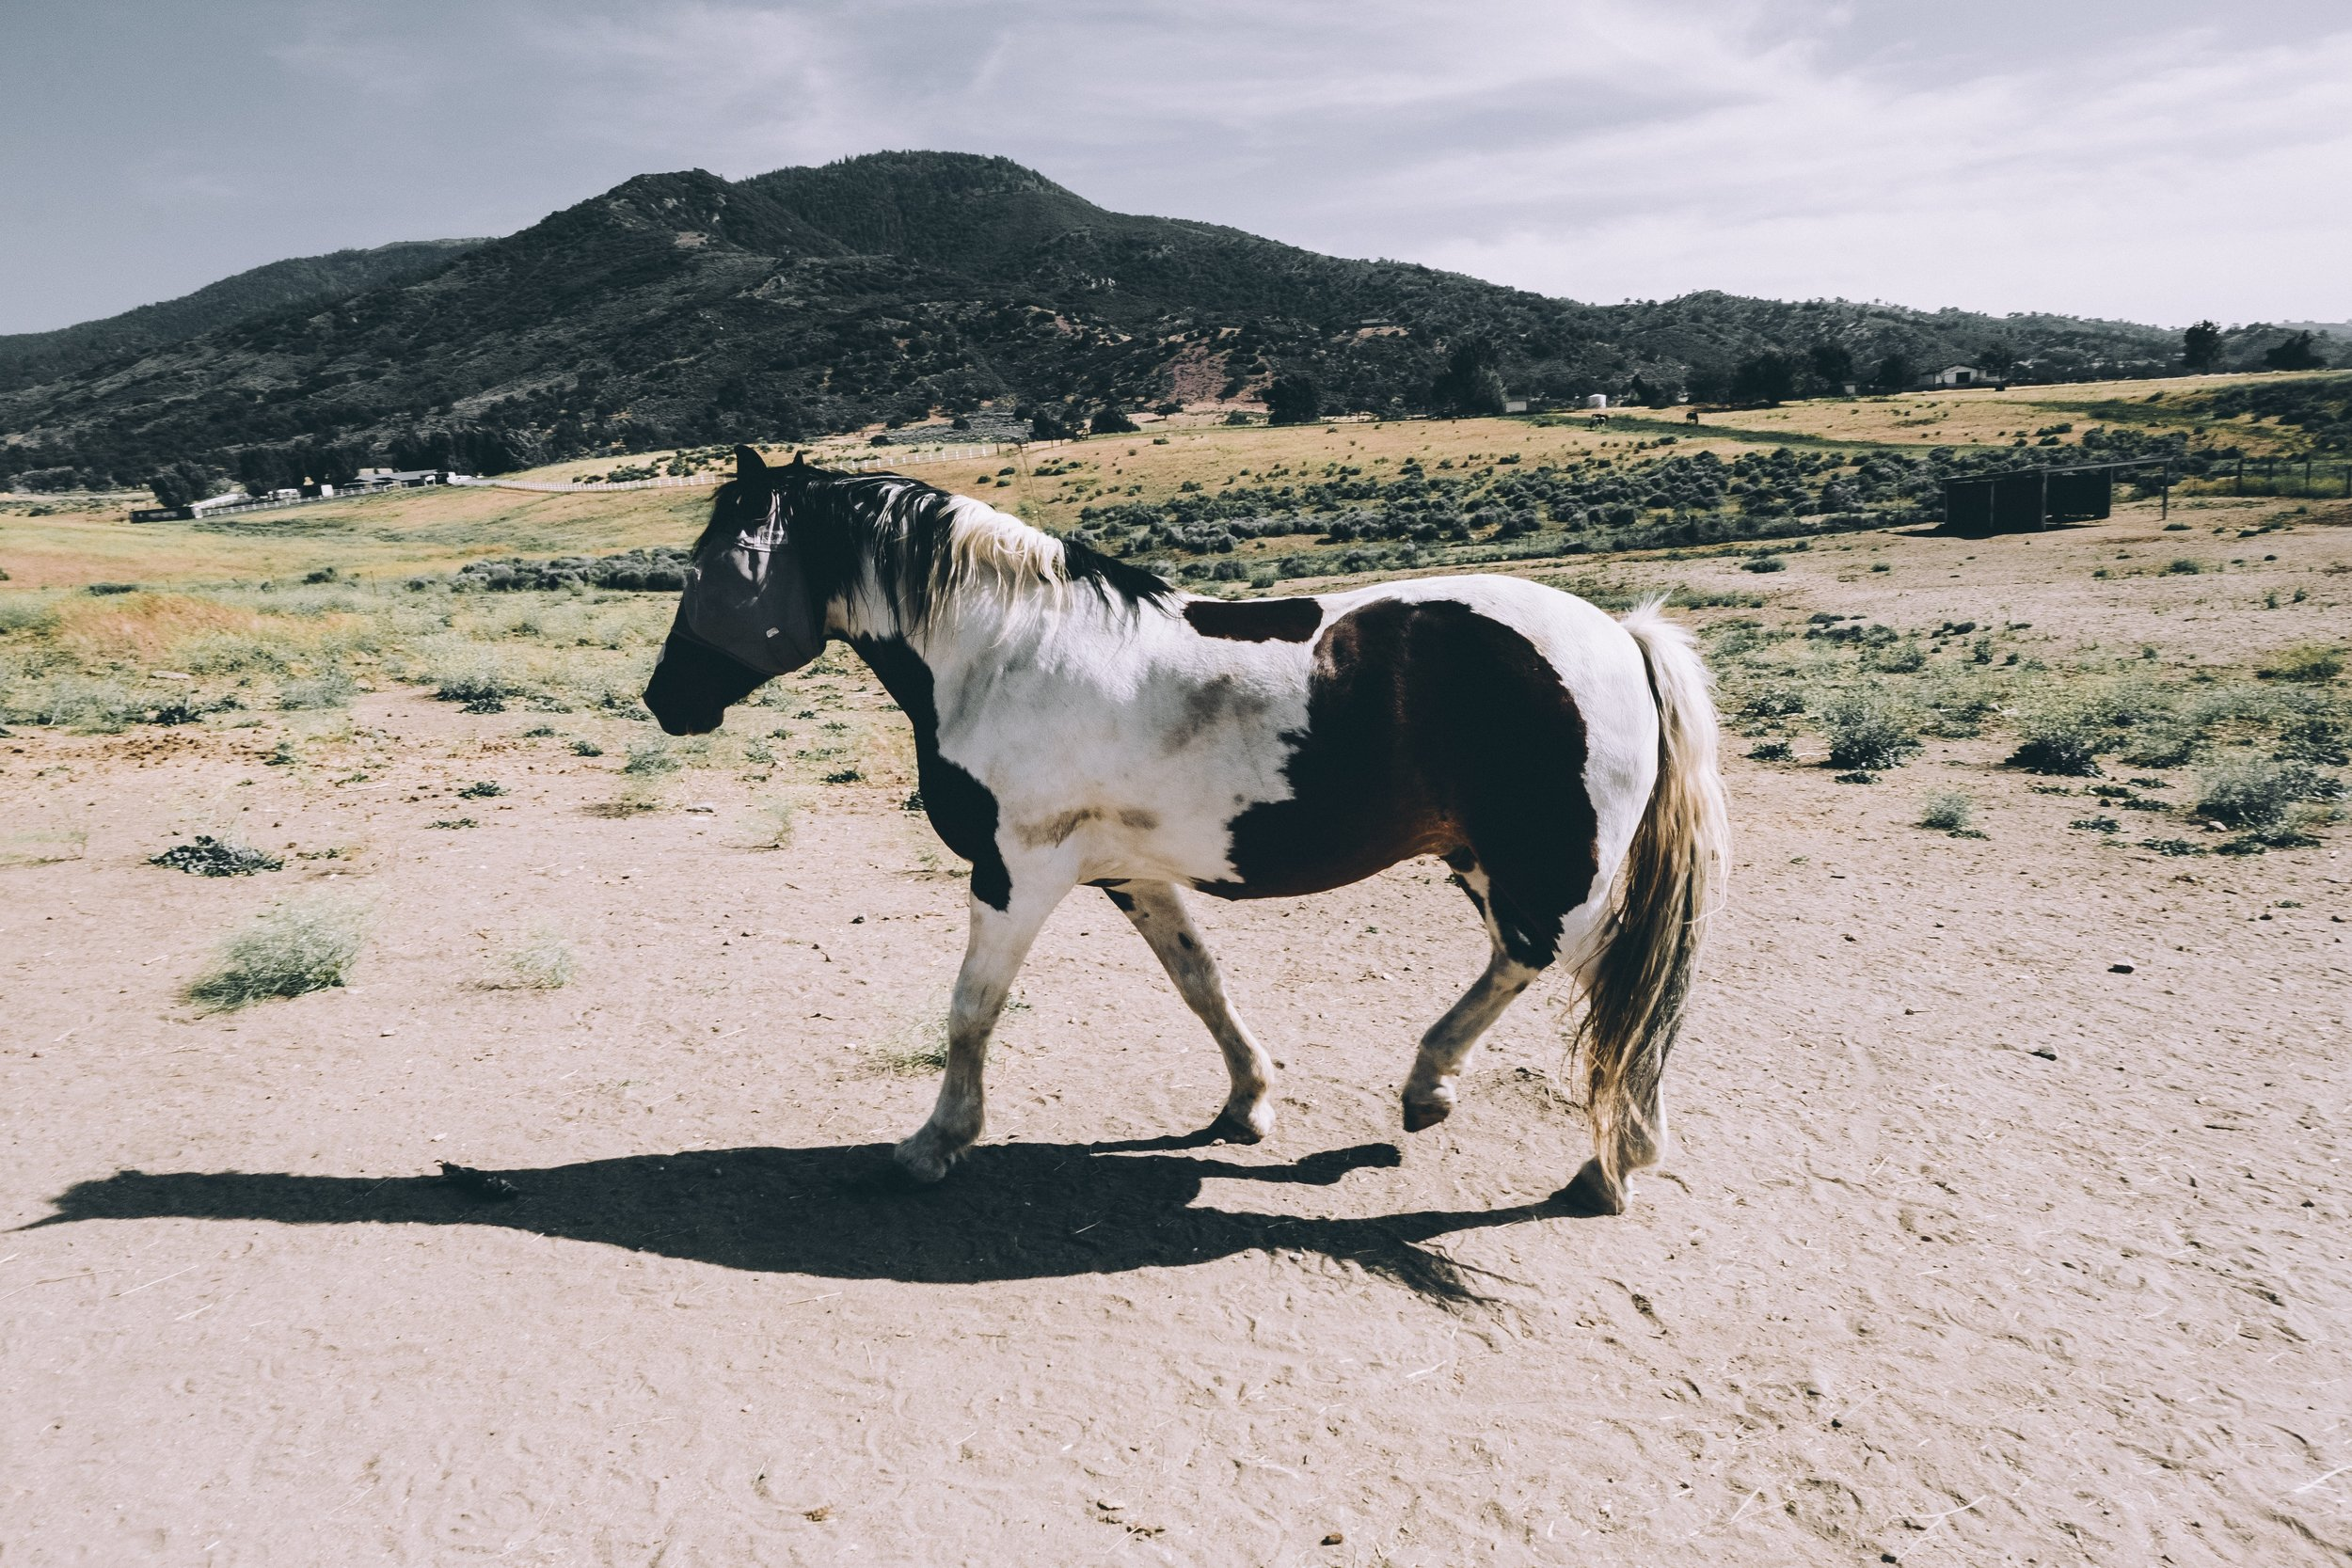 oh hey a horse